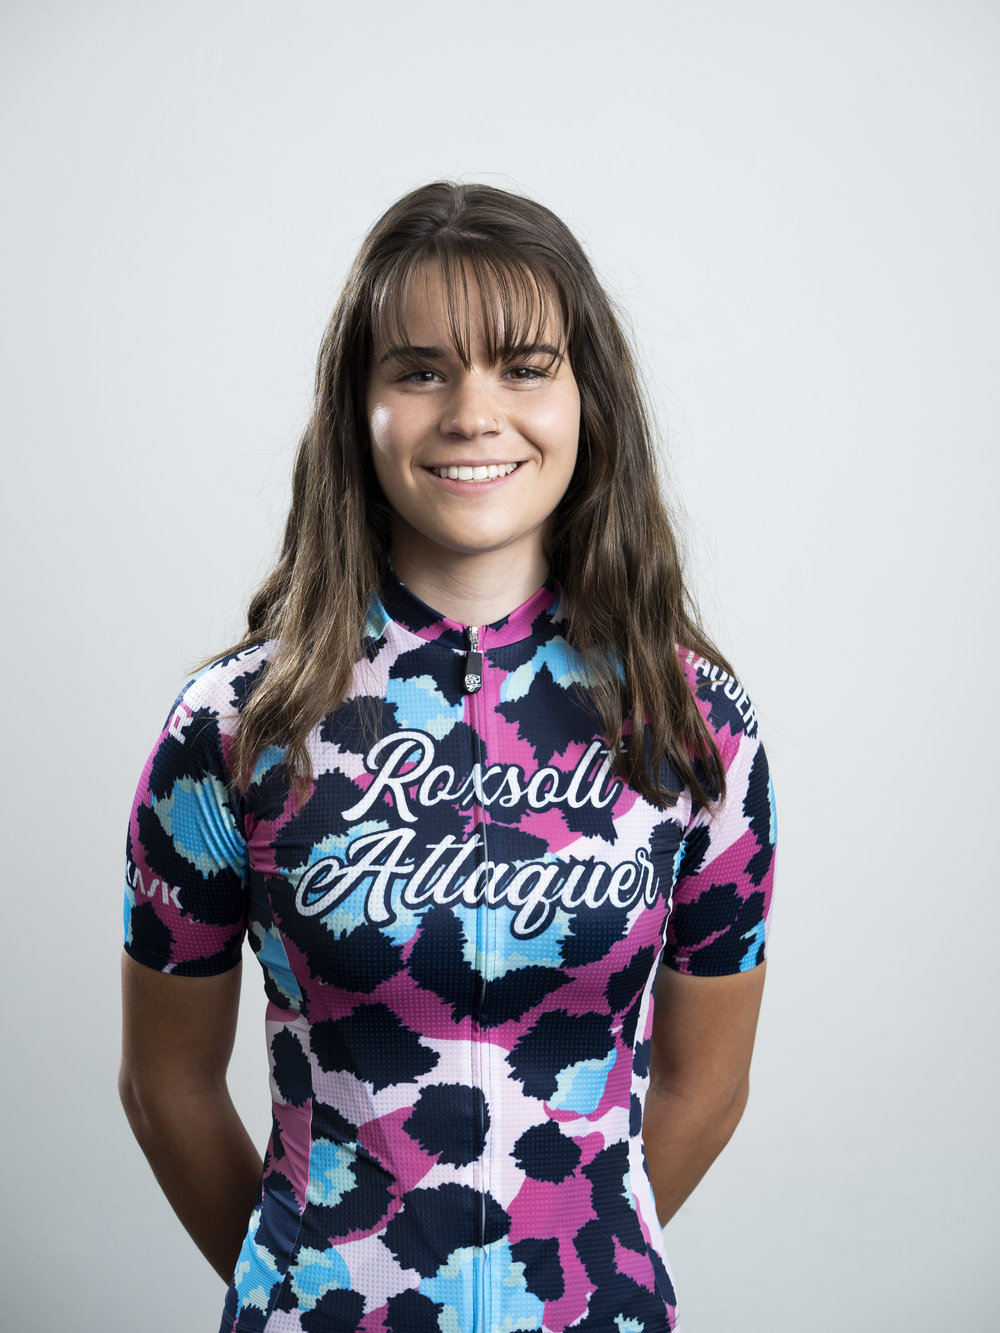 @islabradburyy - Nickname: IzzlesTop Results: 2018 Victorian Road Champion (U17)Where did you grow up: Melbourne, AustraliaFavourite food: BerriesType of rider: All rounderFavourite place to ride: Bright, Victoria, AustraliaWhat do you hope to achieve cycling this year: Have fun riding bike and enjoy racing some tours